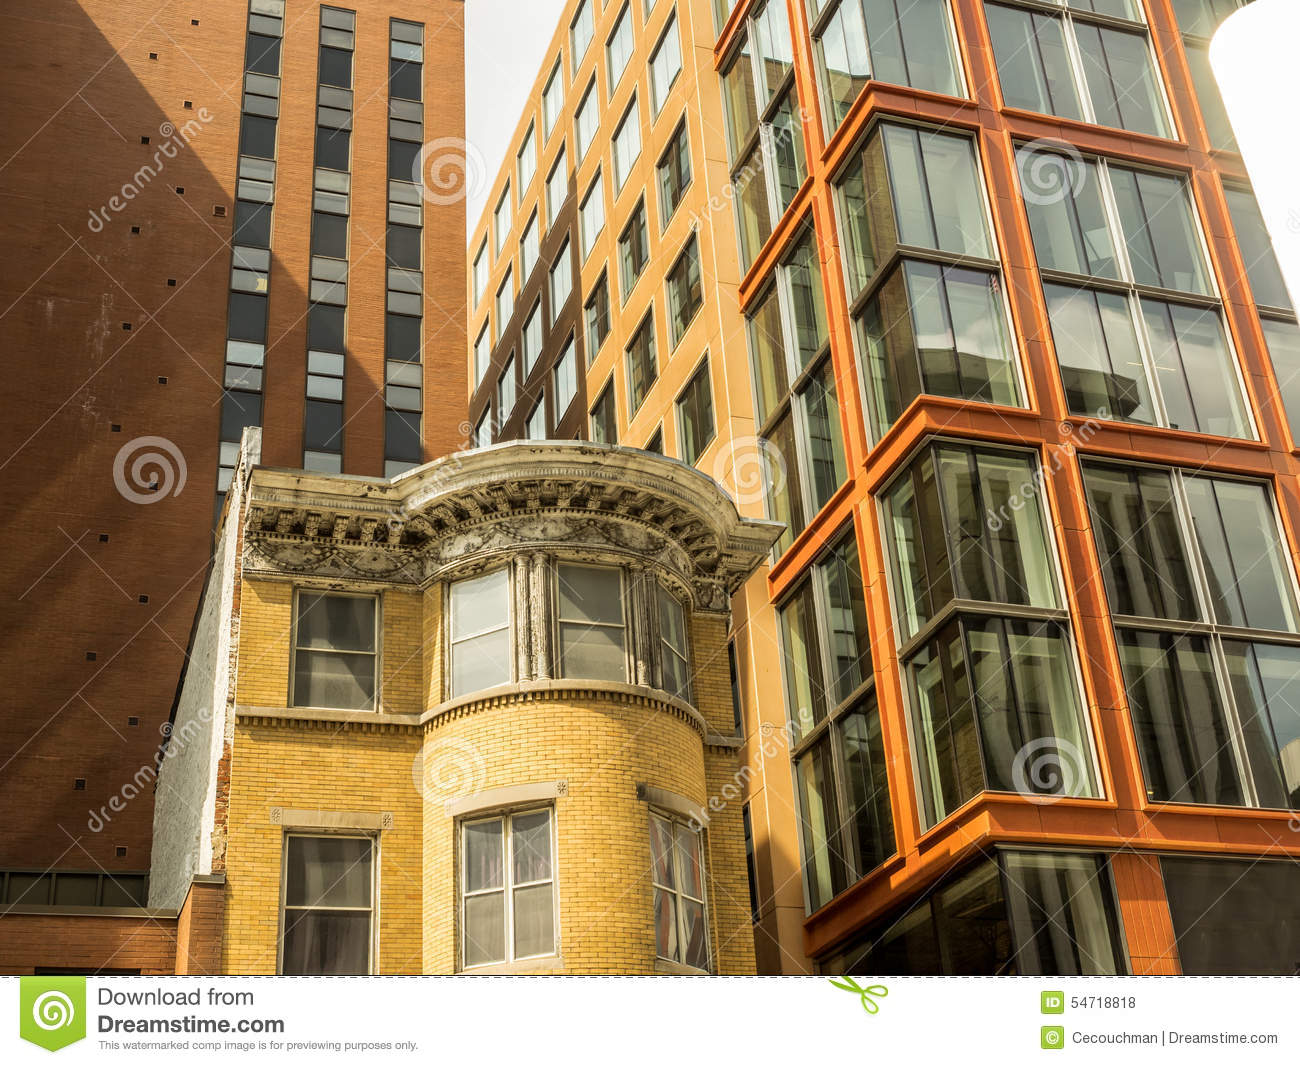 Architectural styles in the city stock photo image 54718818 for Basic architectural styles